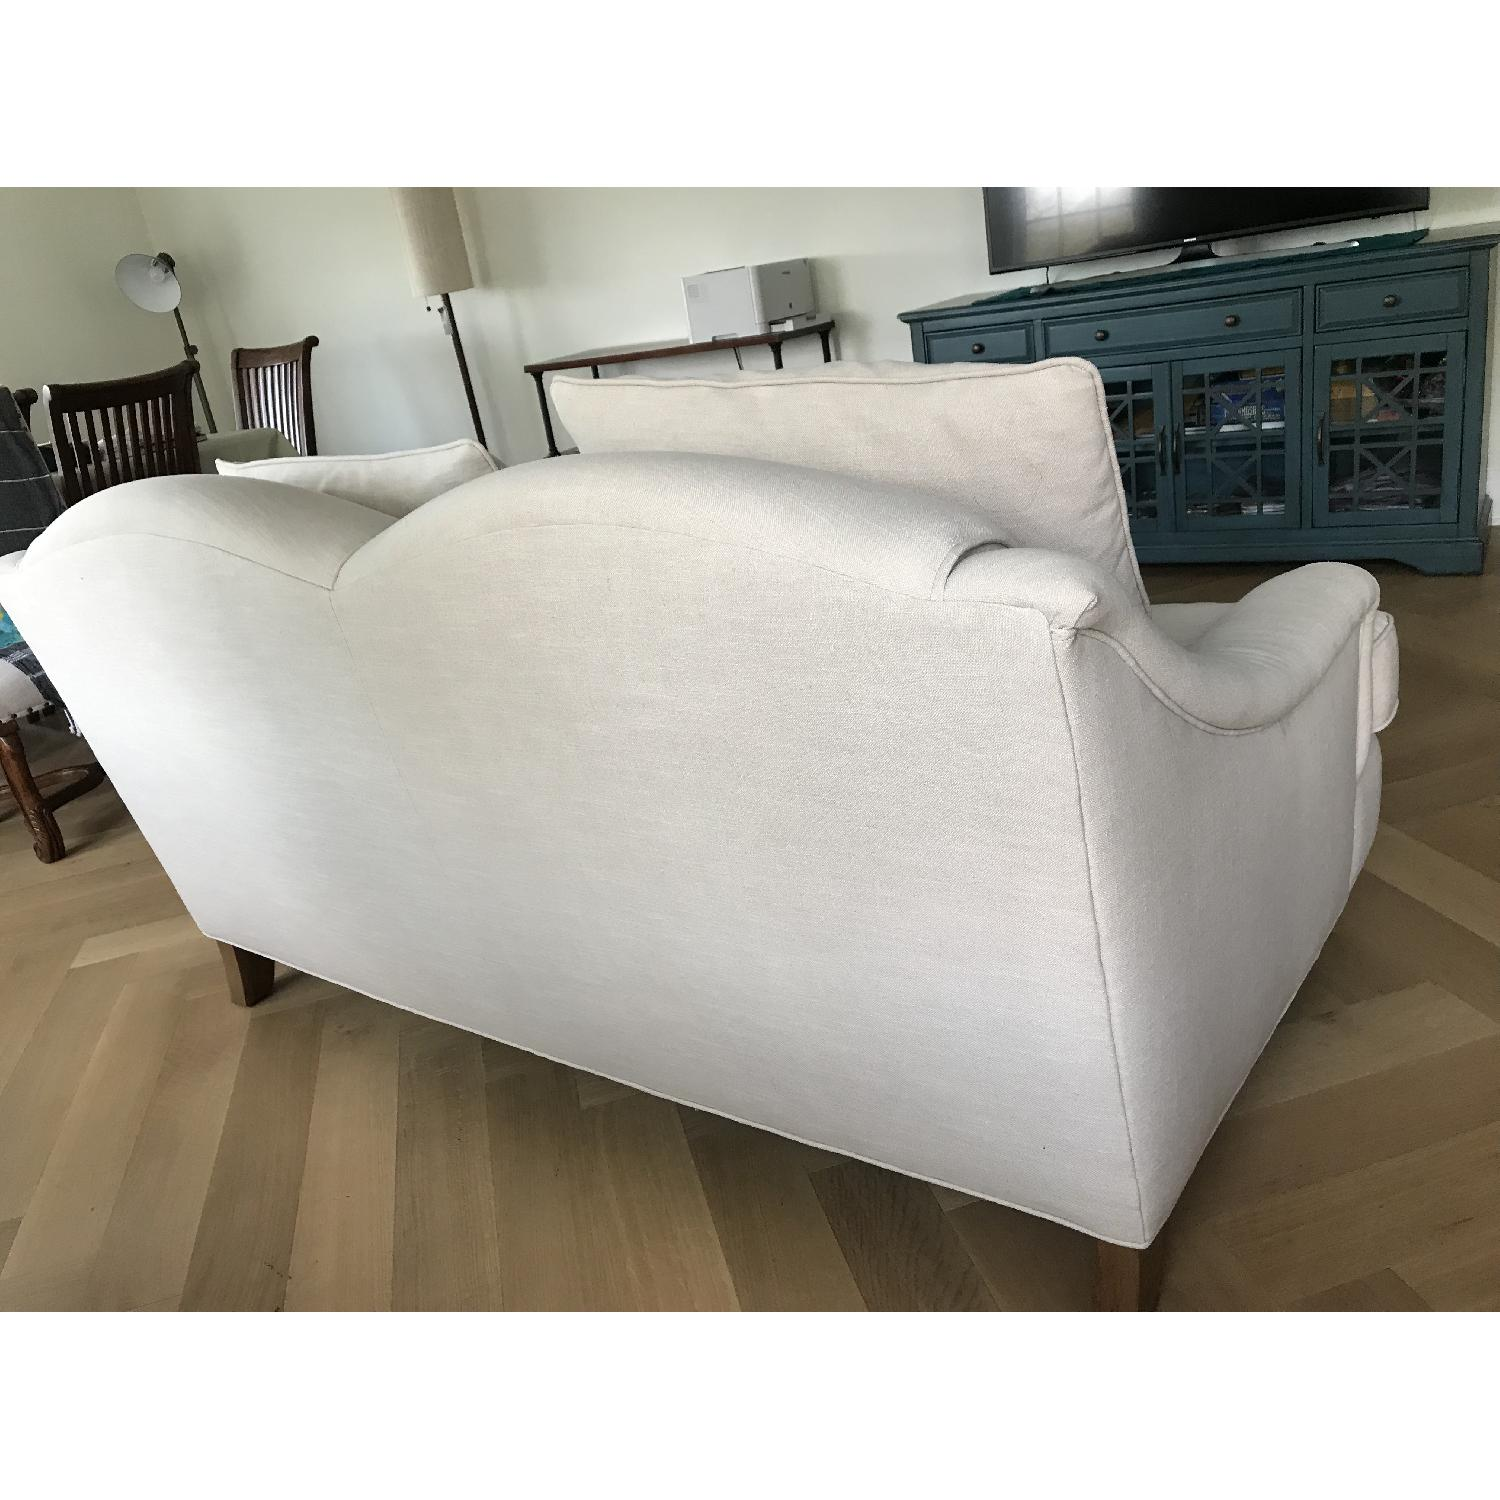 Magnolia Home by Joanna Gaines Loveseat-2